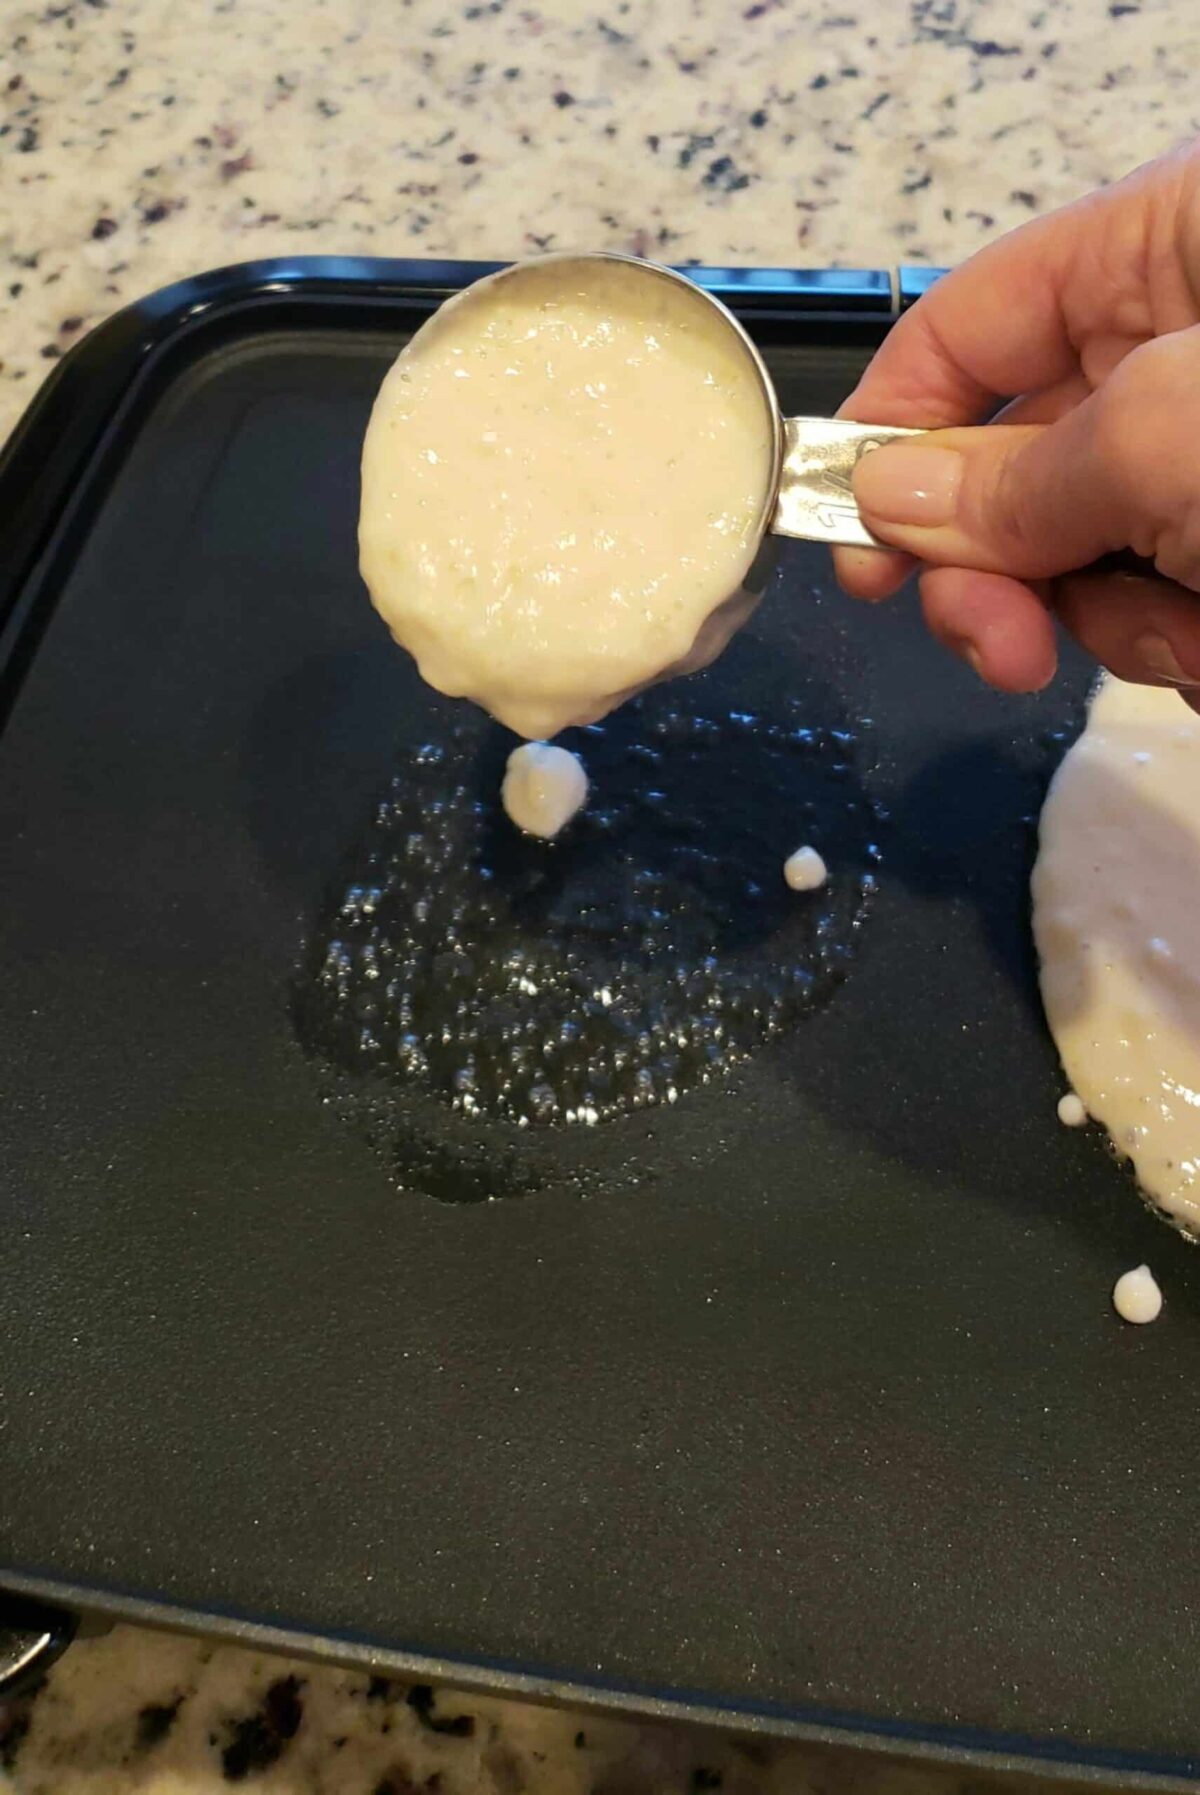 Pouring the pancake batter onto the griddle with a dry measuring cup is a great way to avoid dragging a spoon back and forth. That gets messy. This method makes sure they come out perfectly round-or closer to it!